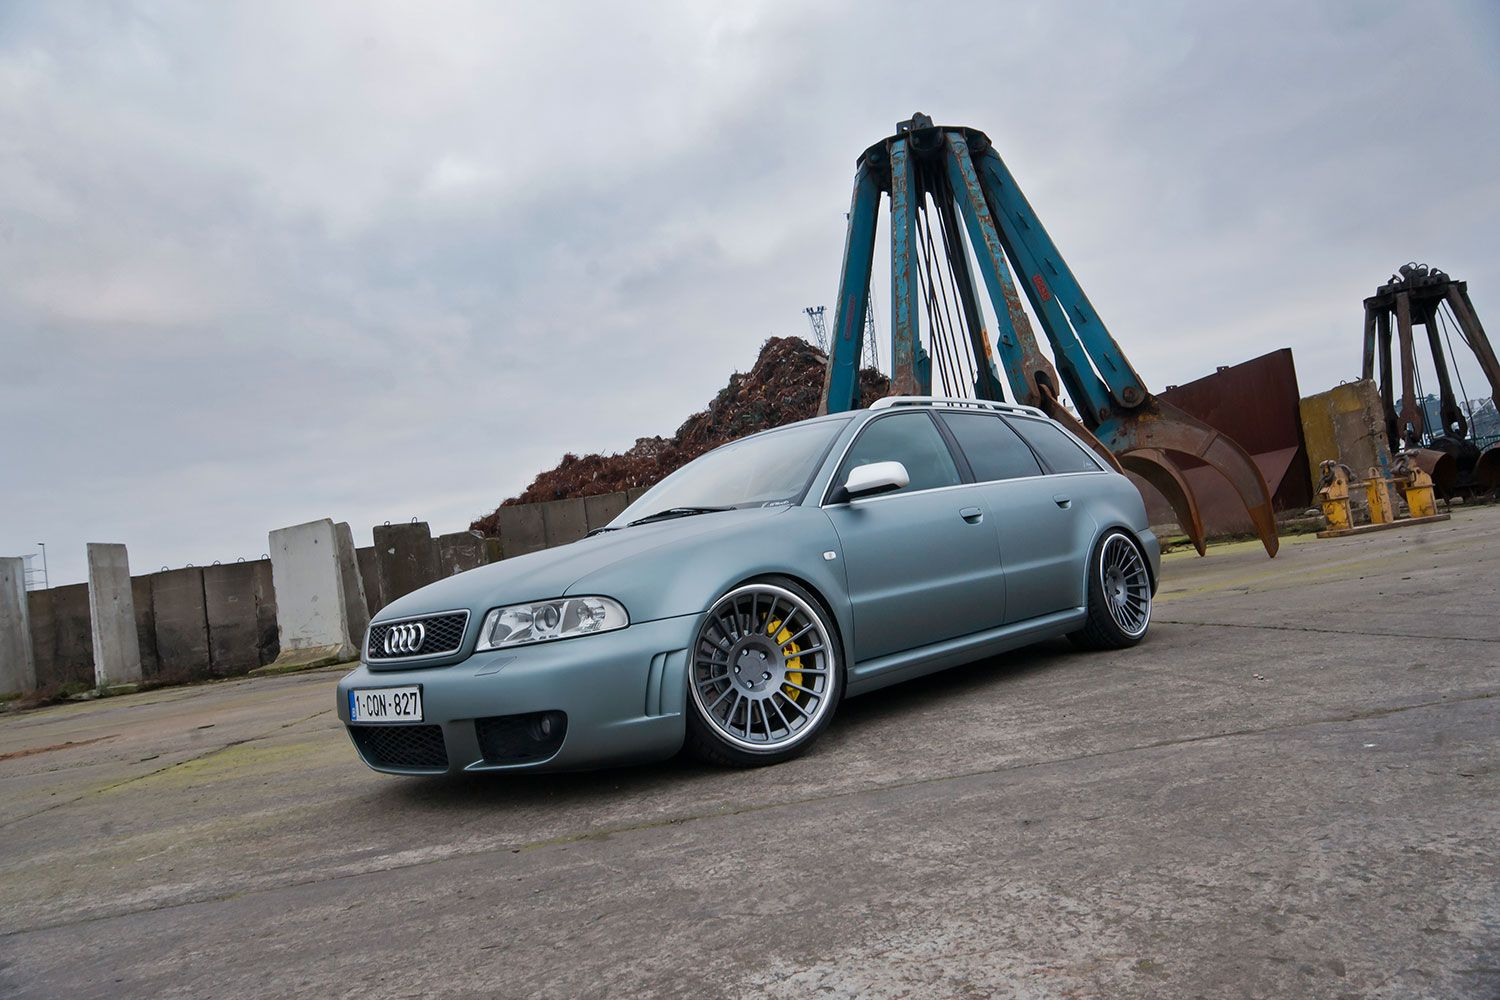 2001-audi-rs4-rotiform-ind-monolook-superconcave-wheels-04